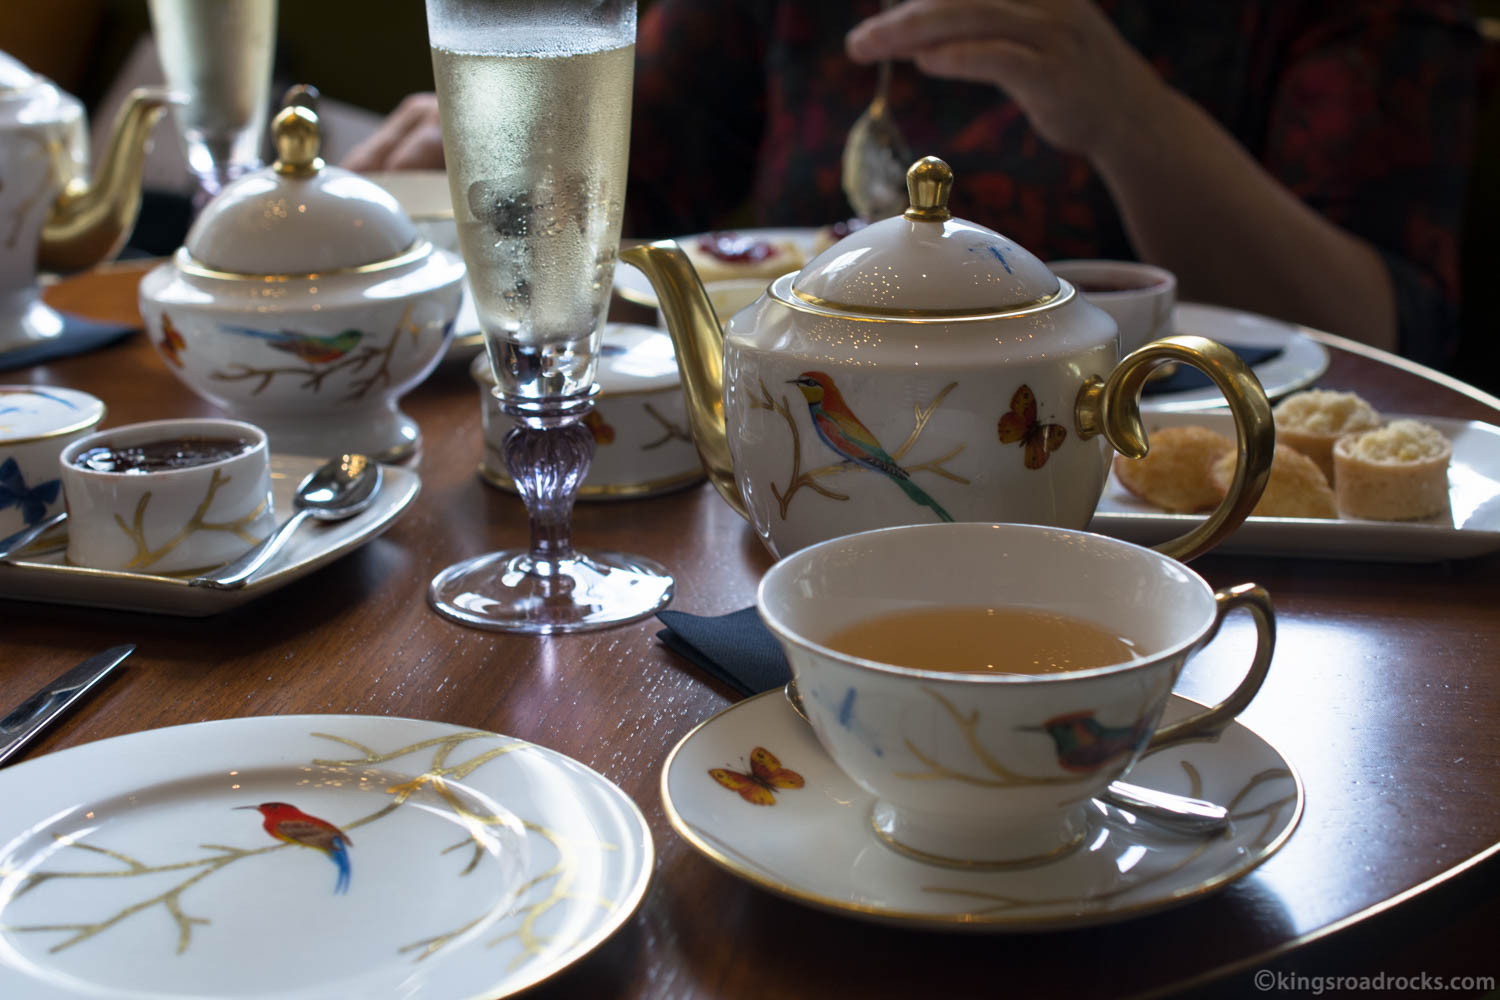 Afternoon Tea at The Rosebery, Mandarin Oriental